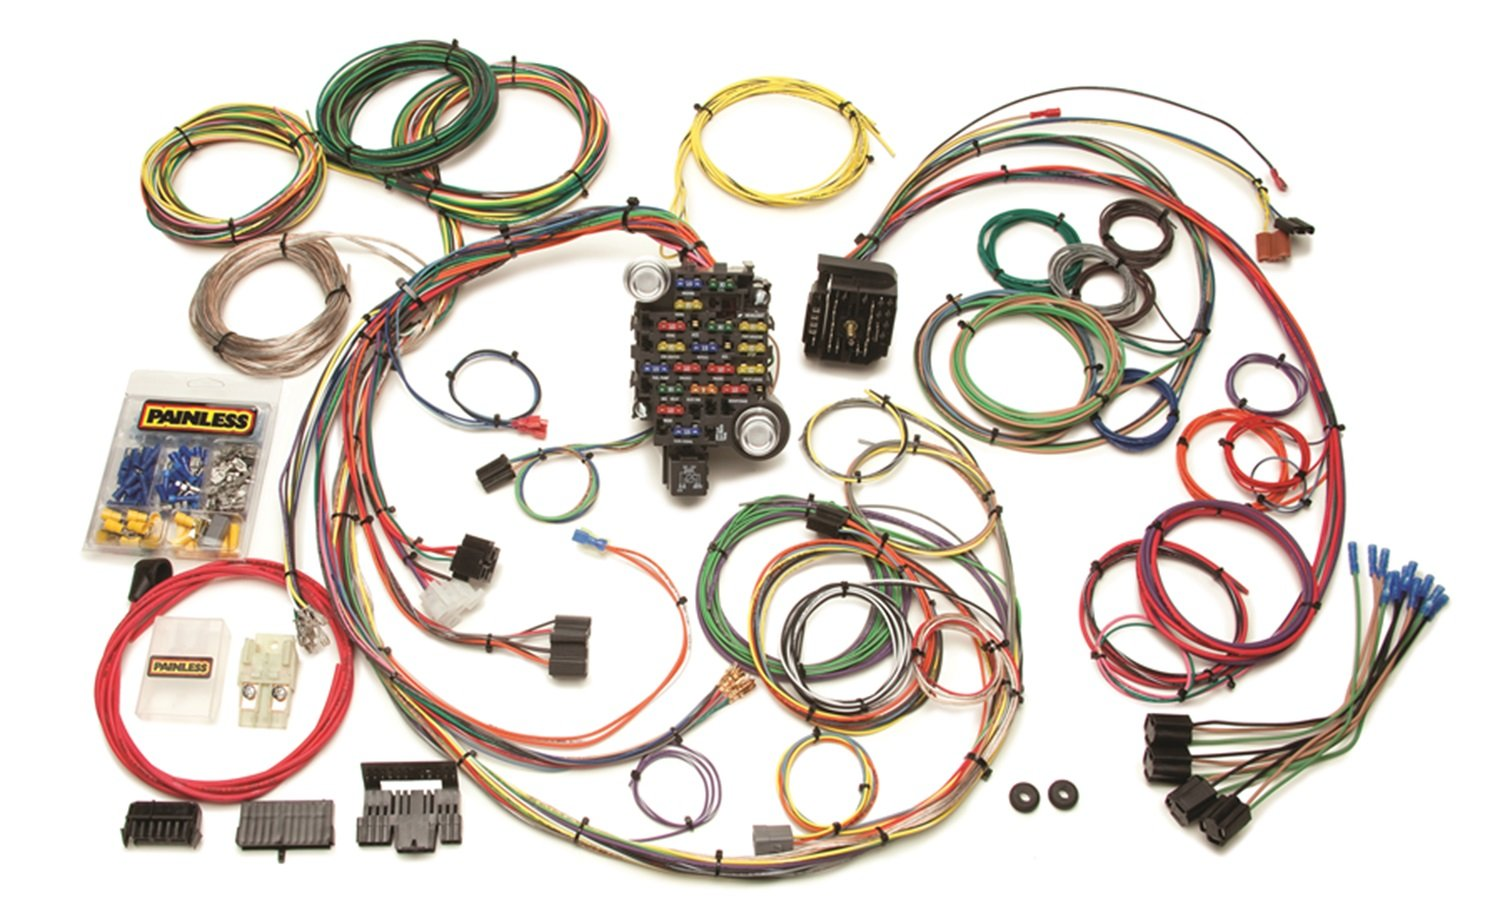 71RvMxx3qDL._SL1500_ amazon com painless 20102 custom wiring harness automotive car wiring harness at suagrazia.org